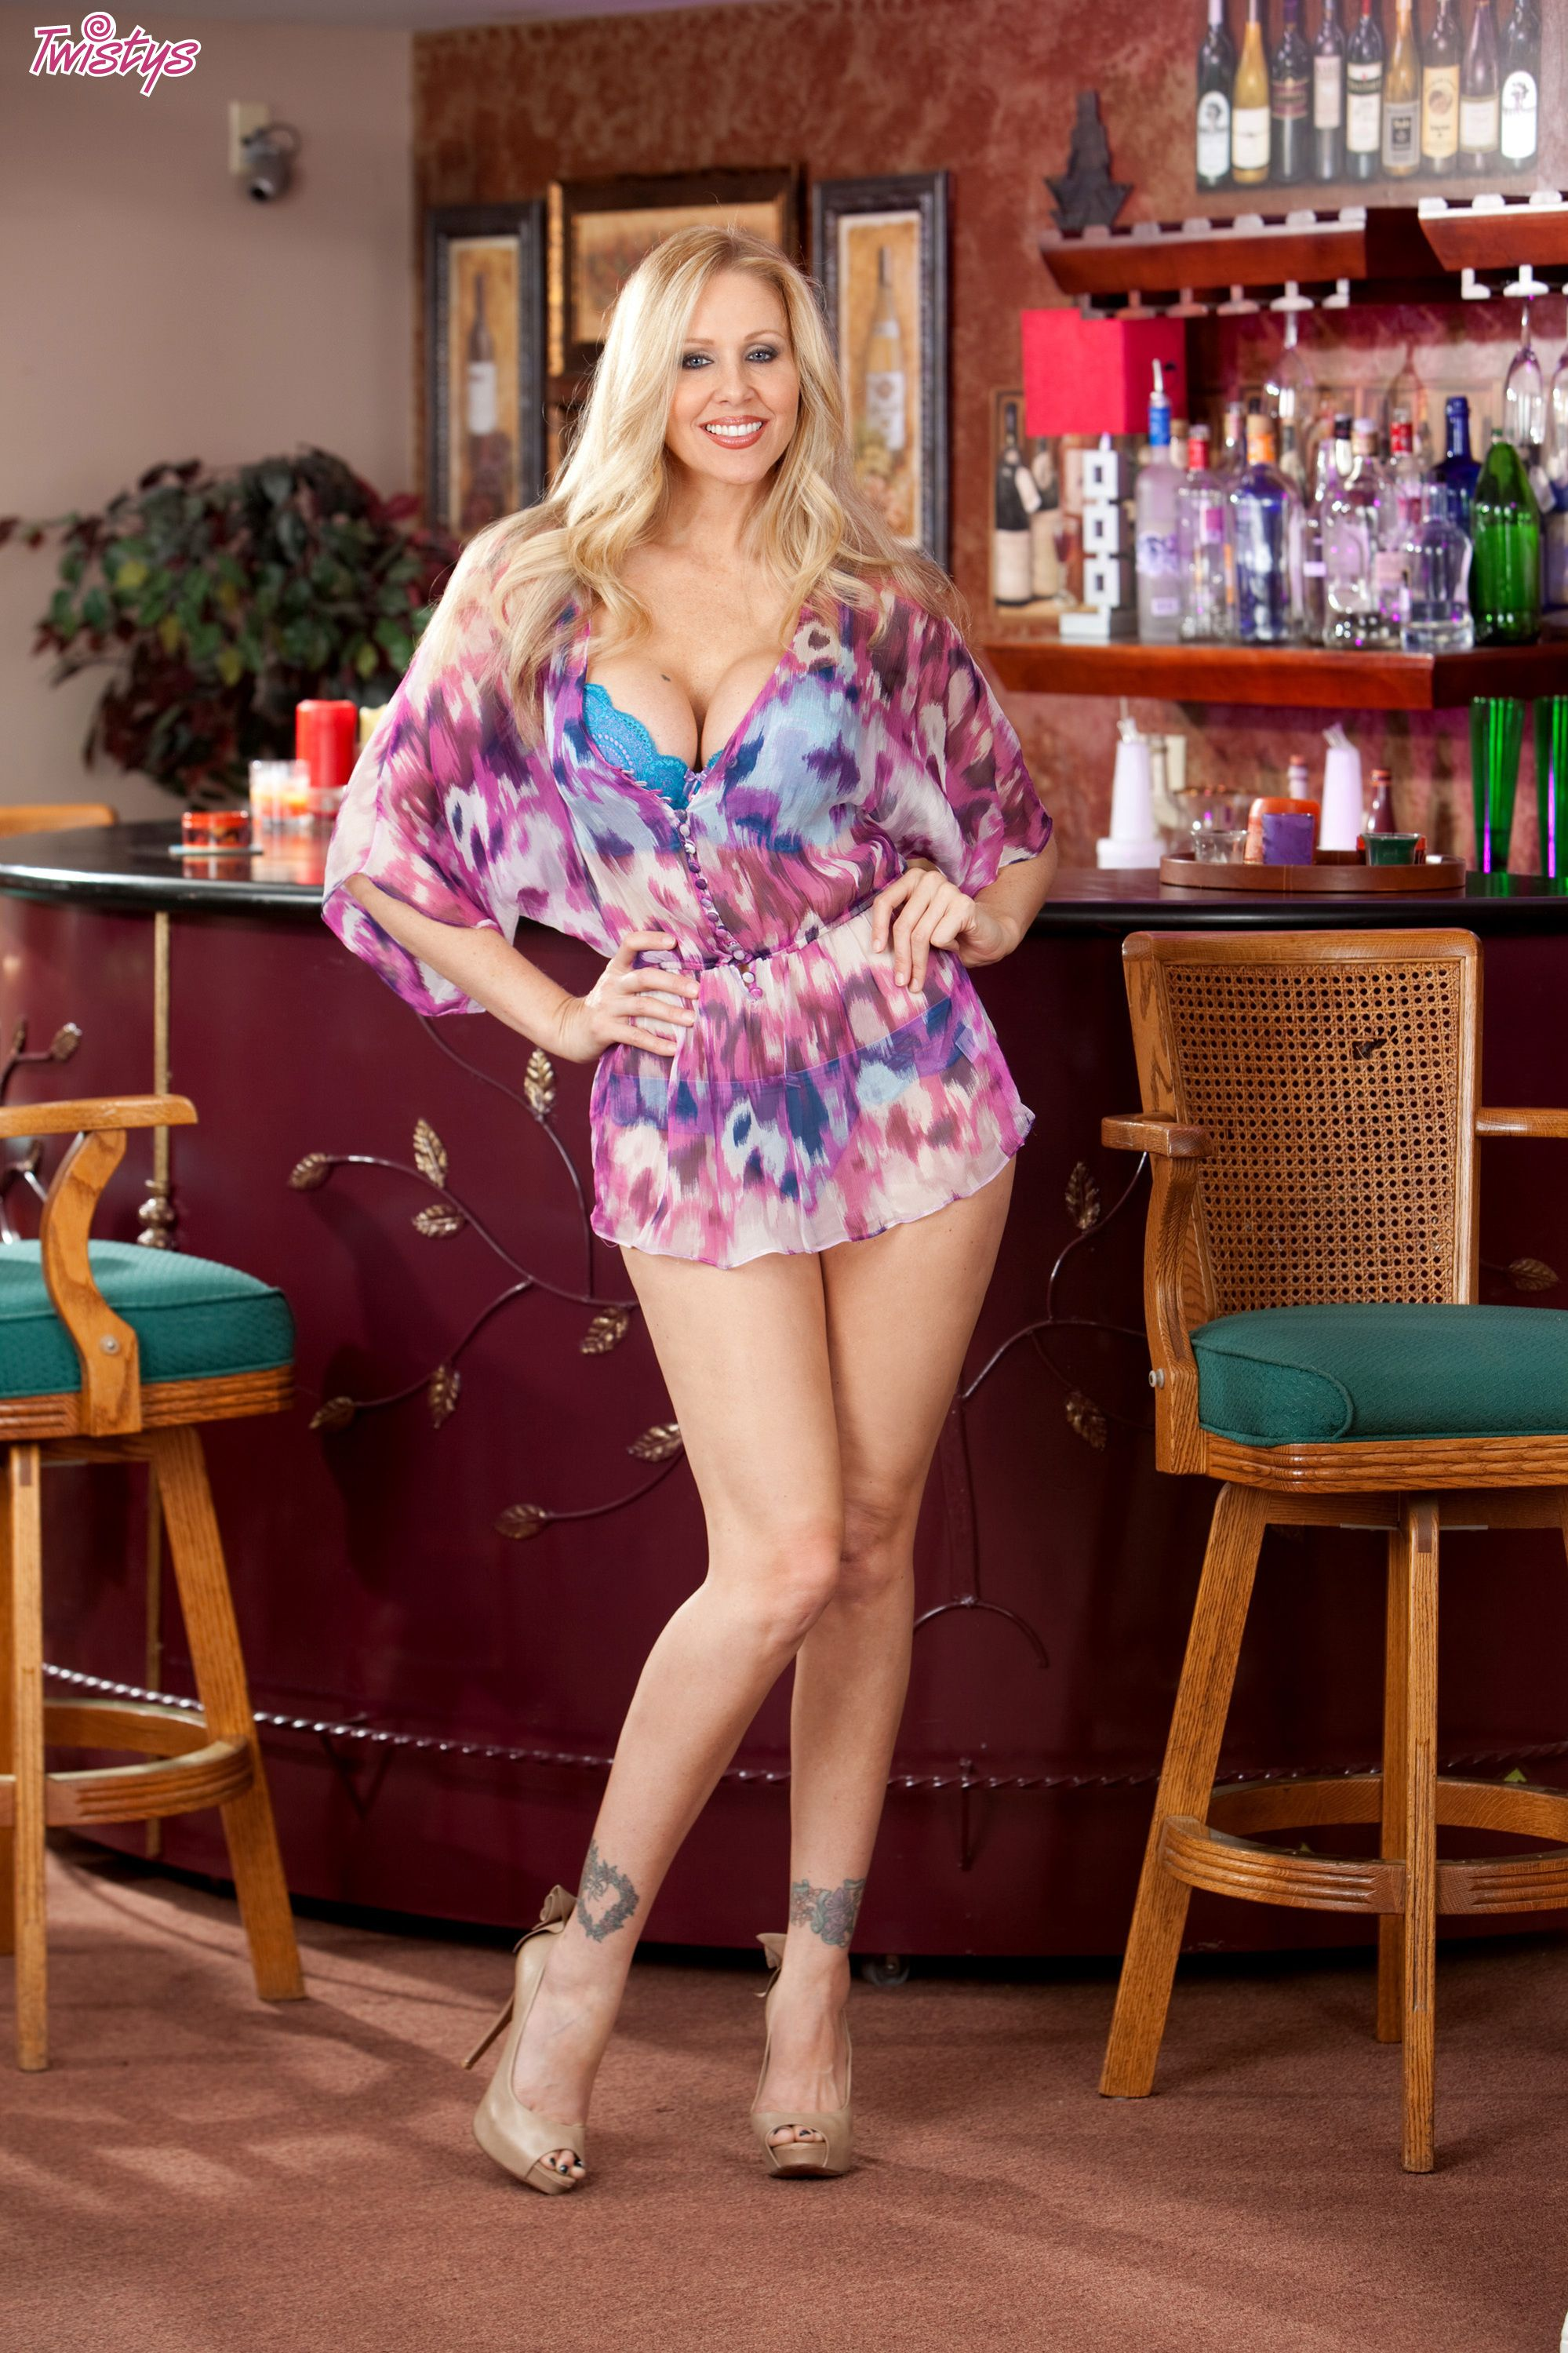 Leggy older blonde babe Julia Ann unleashing big tits from lingerie № 1392307 без смс